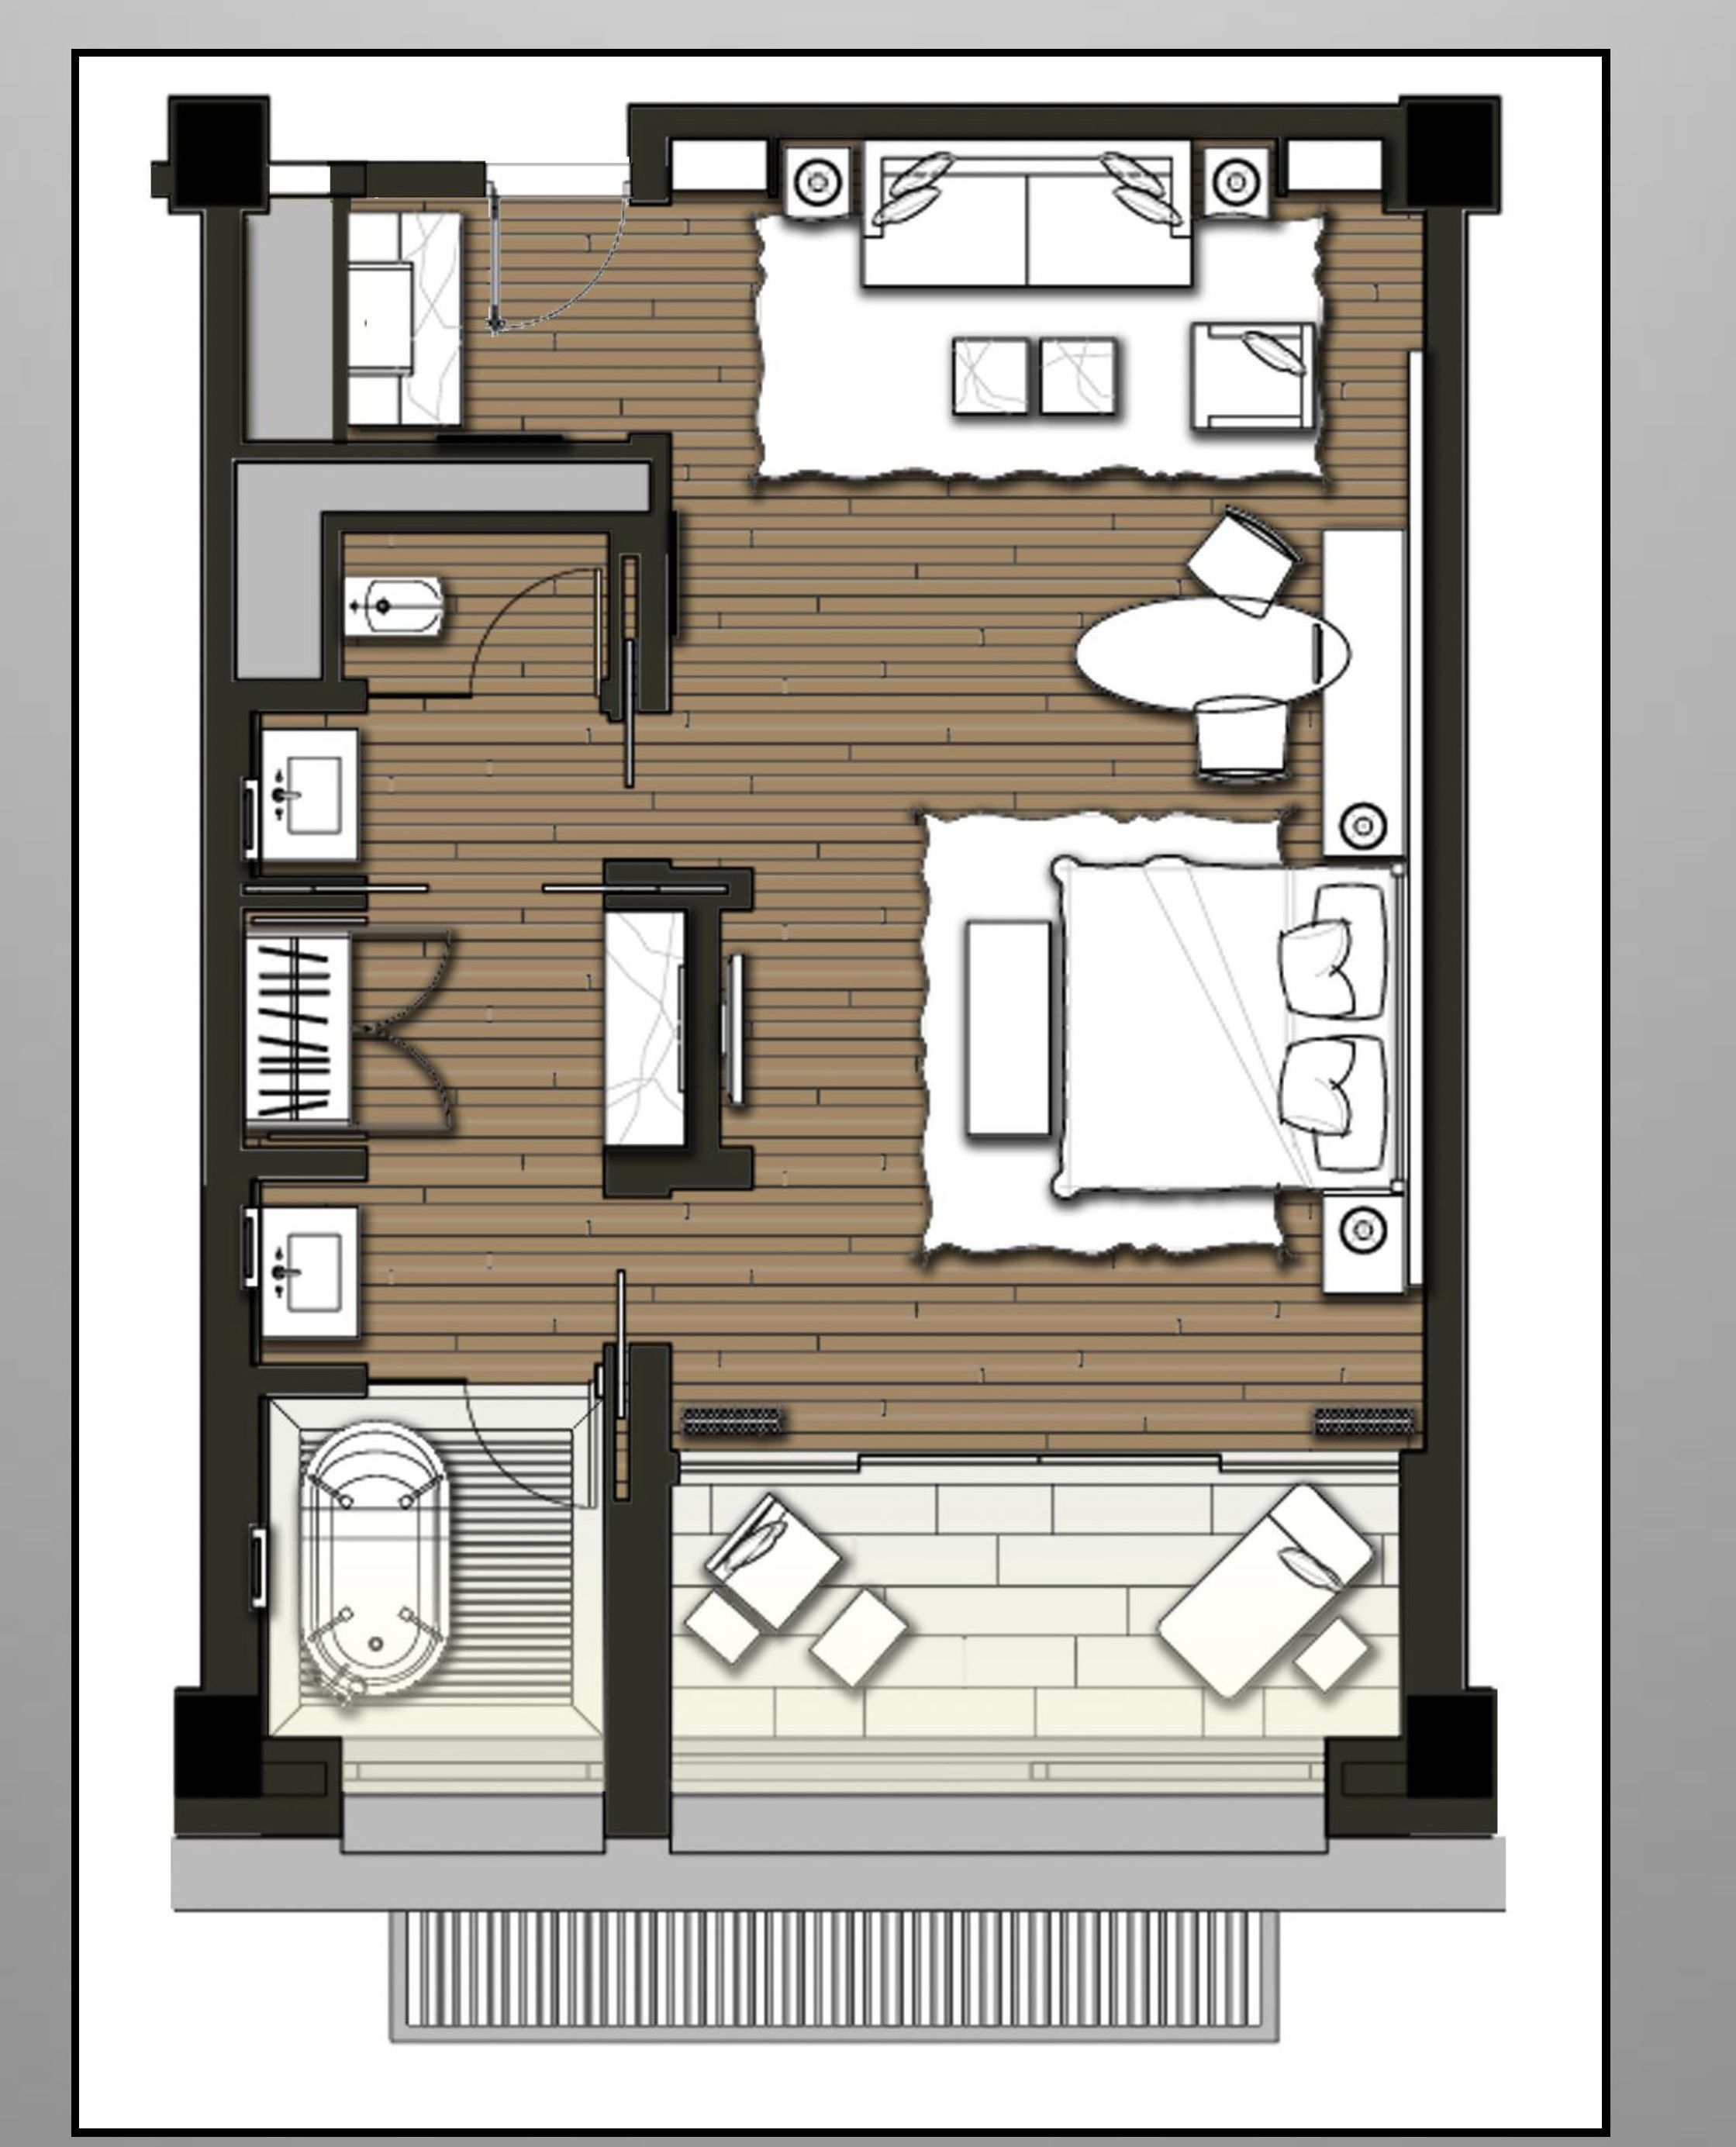 Pin By Aoao Miao On Plane Hotel Floor Plan Hotel Room Plan House Layout Plans